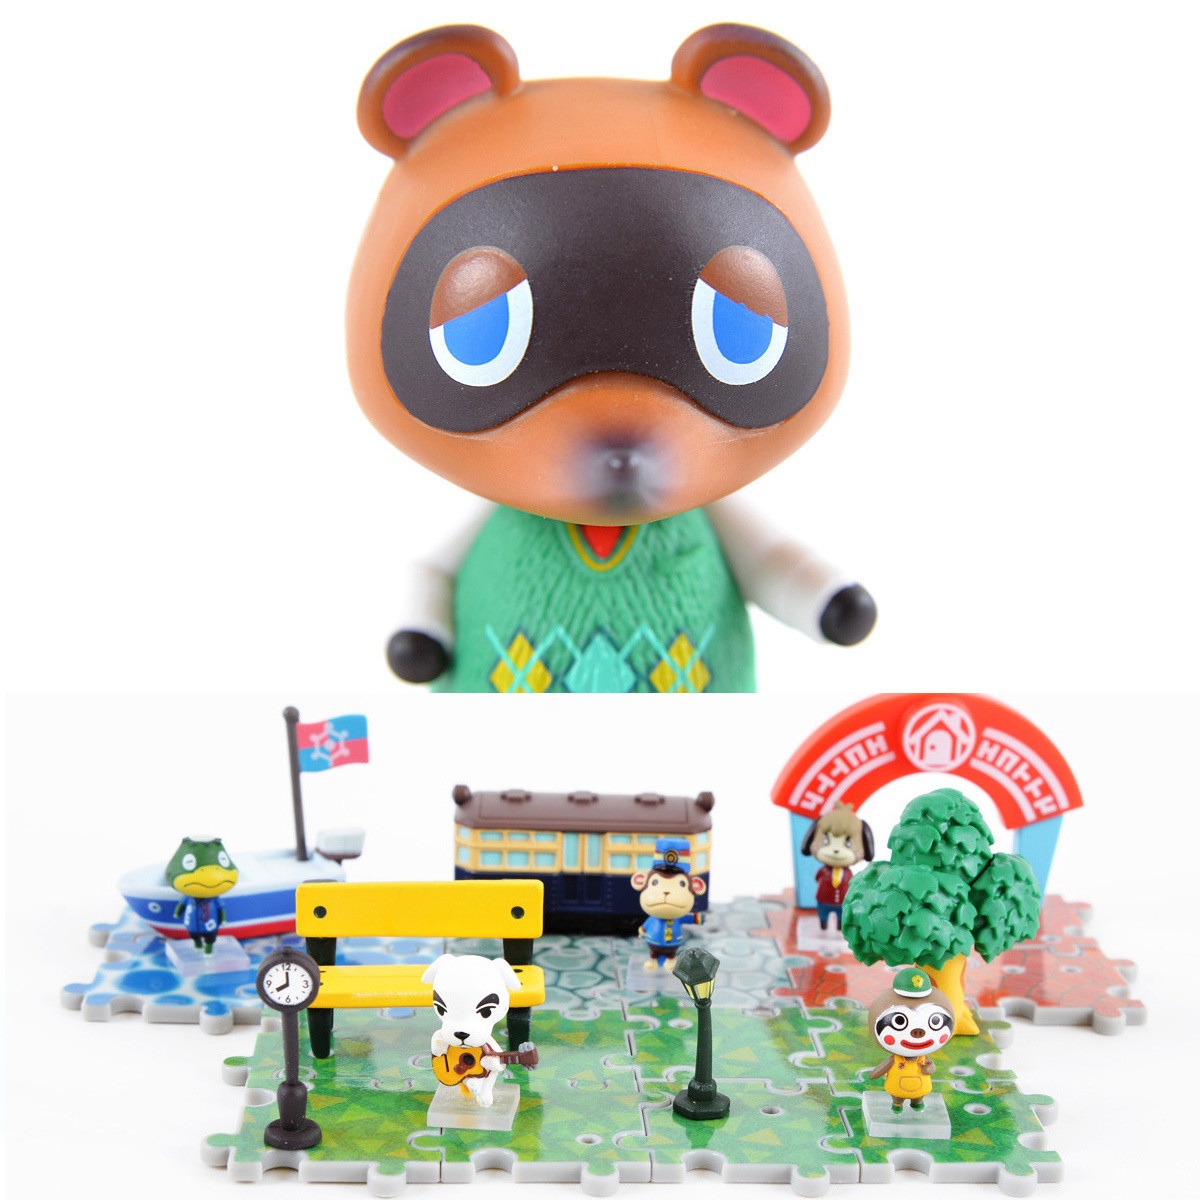 Amiibo Crossing Animal Crossing New Leaf Outing Collection Set Of 5 W Free Tom Nook Amiibo